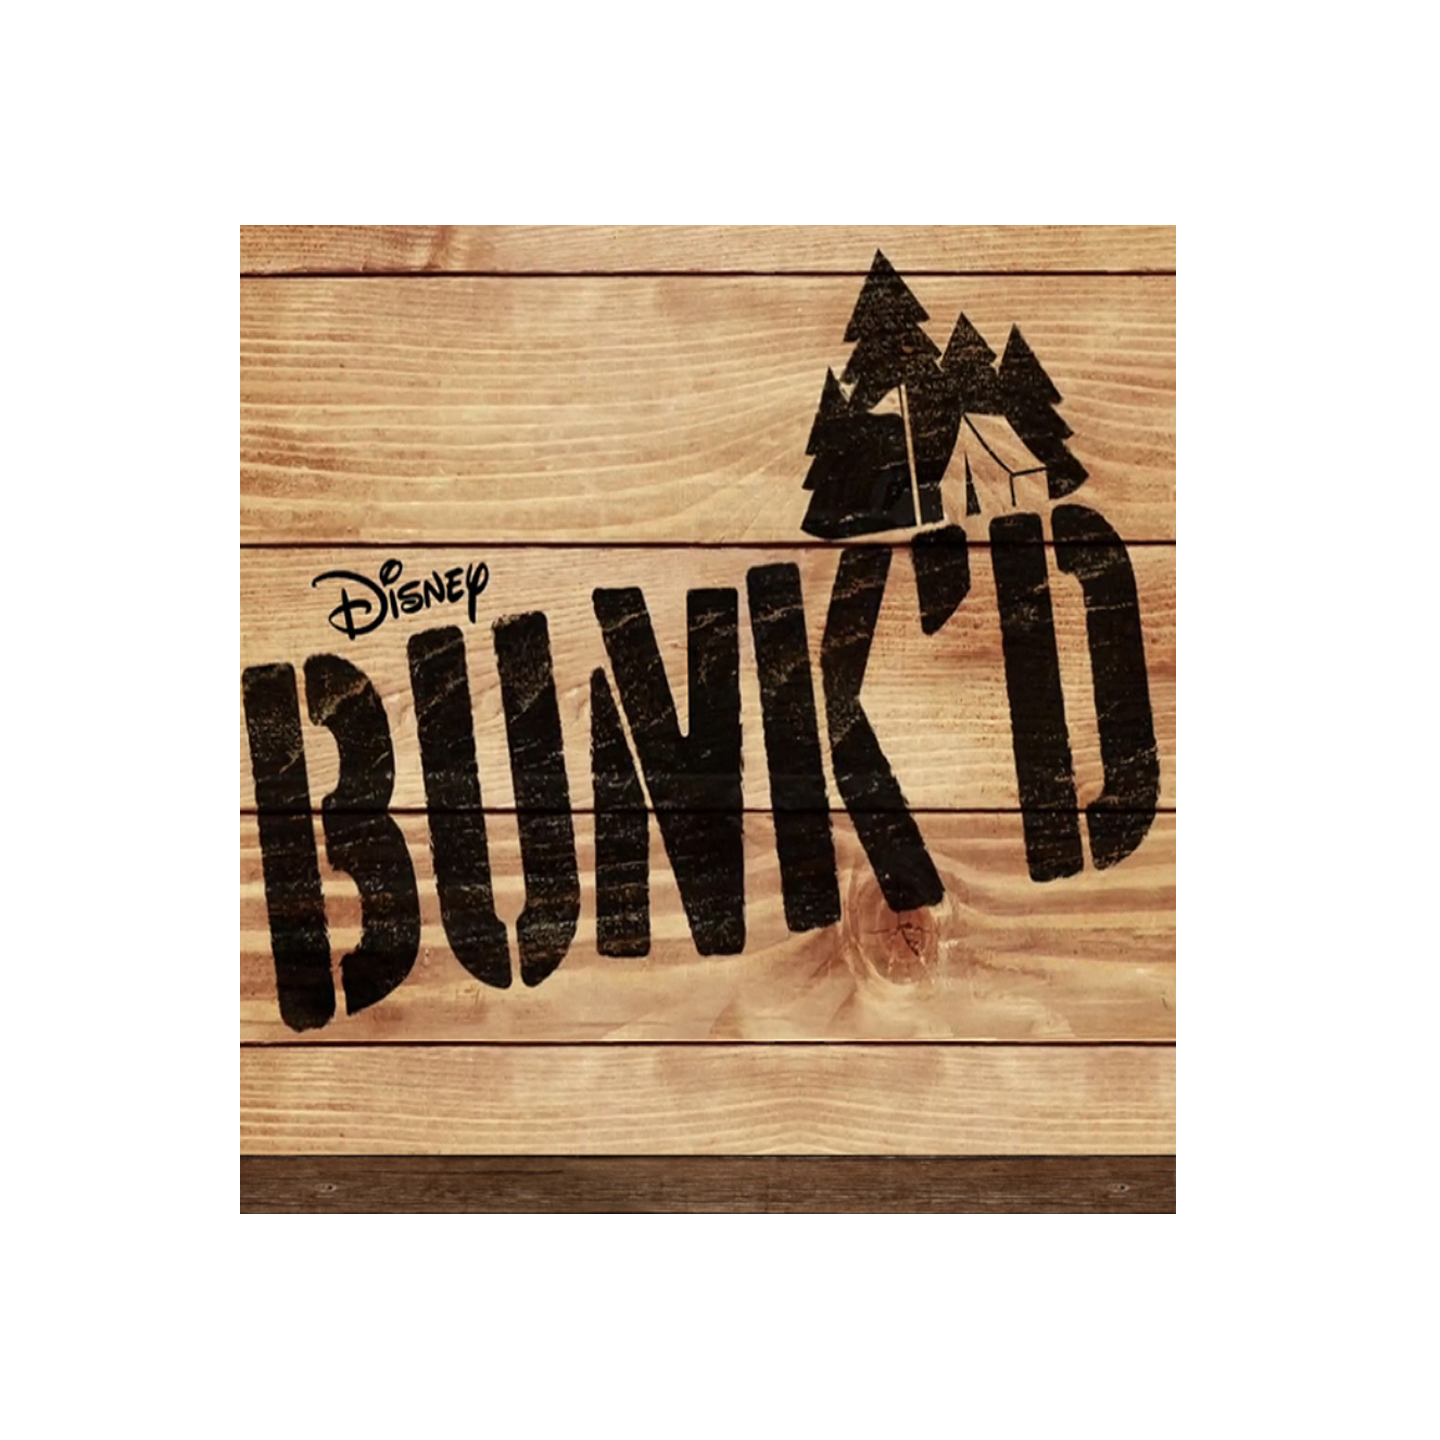 """They say comedy comes from pain. And so it's no wonder that Andrea is one of the funniest people on the planet. She has not only survived an abusive childhood, but found a way to use it in her prose which is so searing and powerful it takes your breath away. -   Pam Eells - EP ""Bunk'd"""